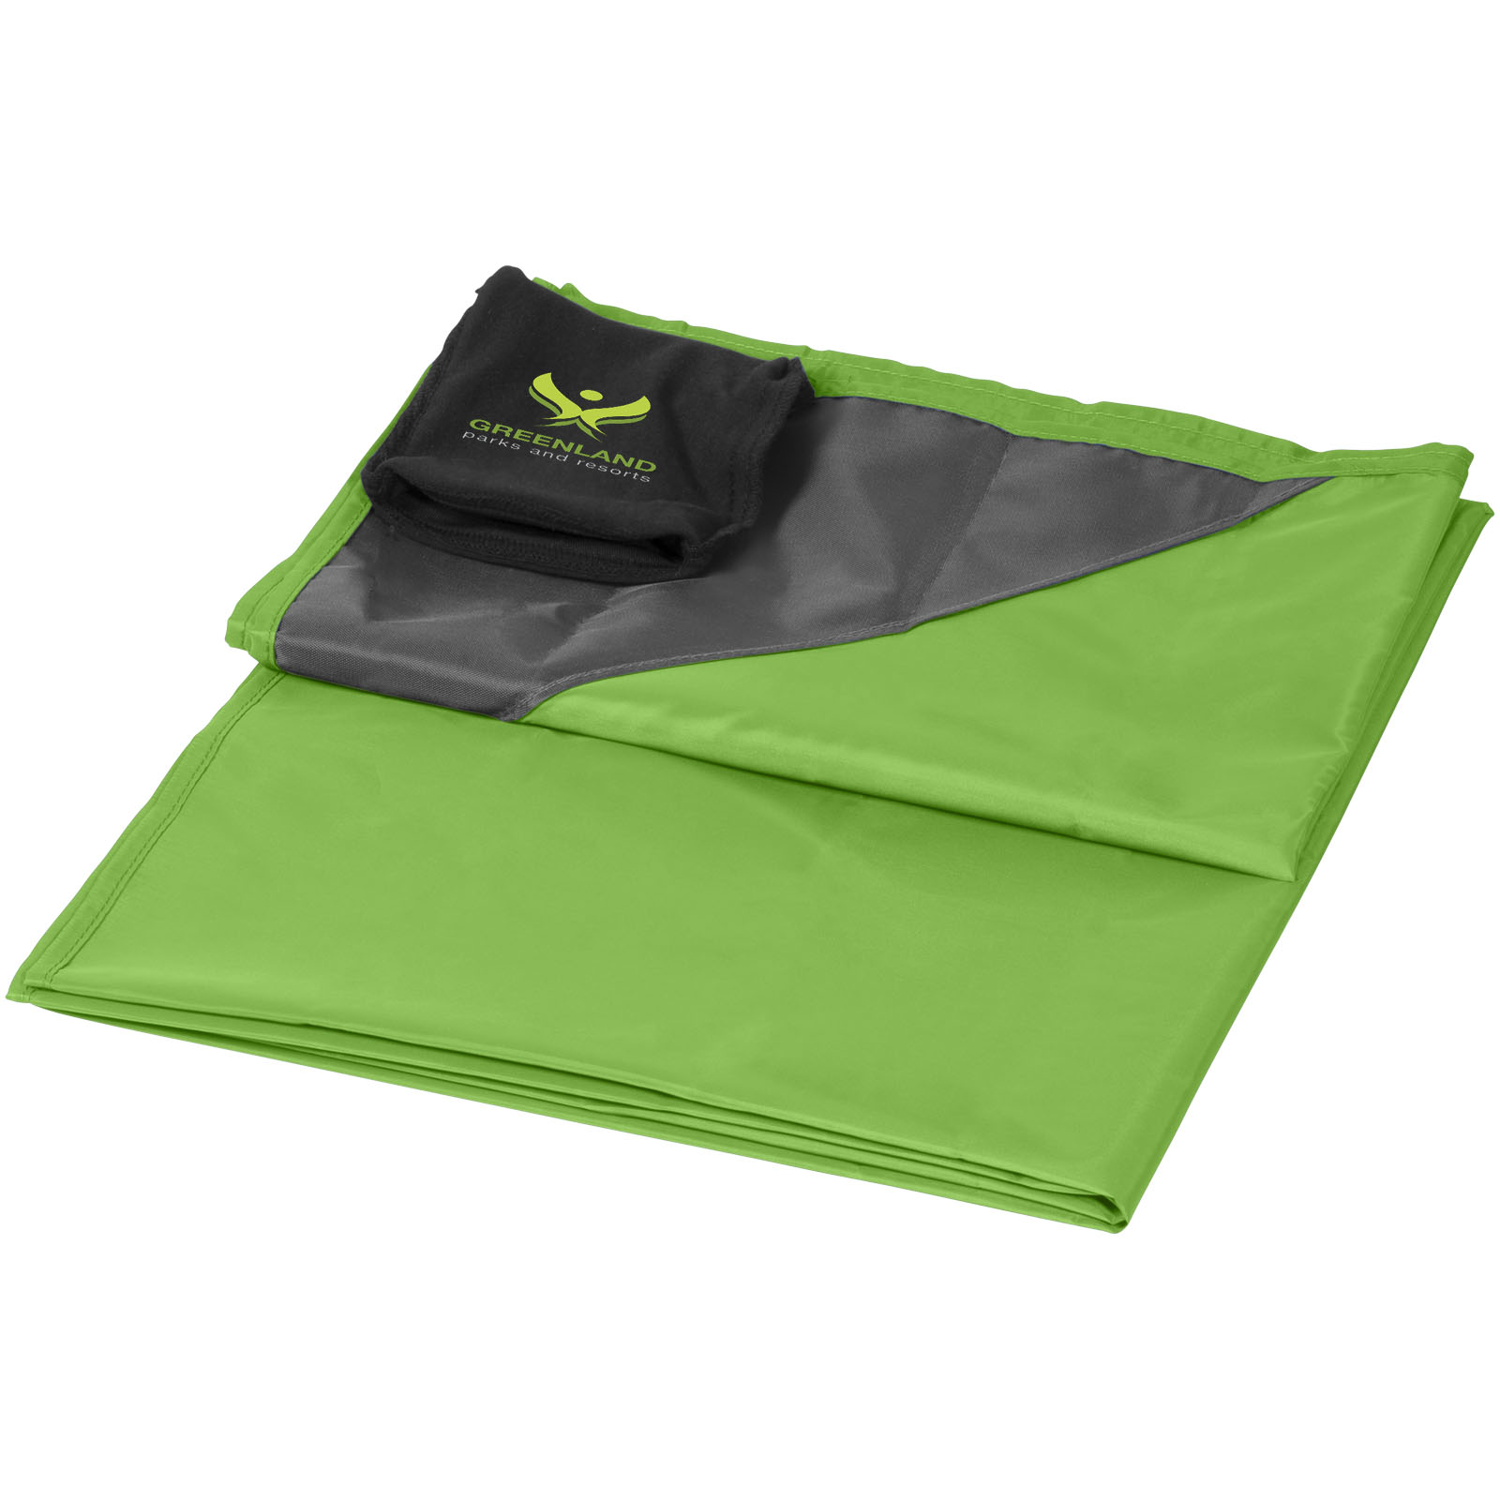 Stow-And-Go Water-Resistant Picnic Blanket